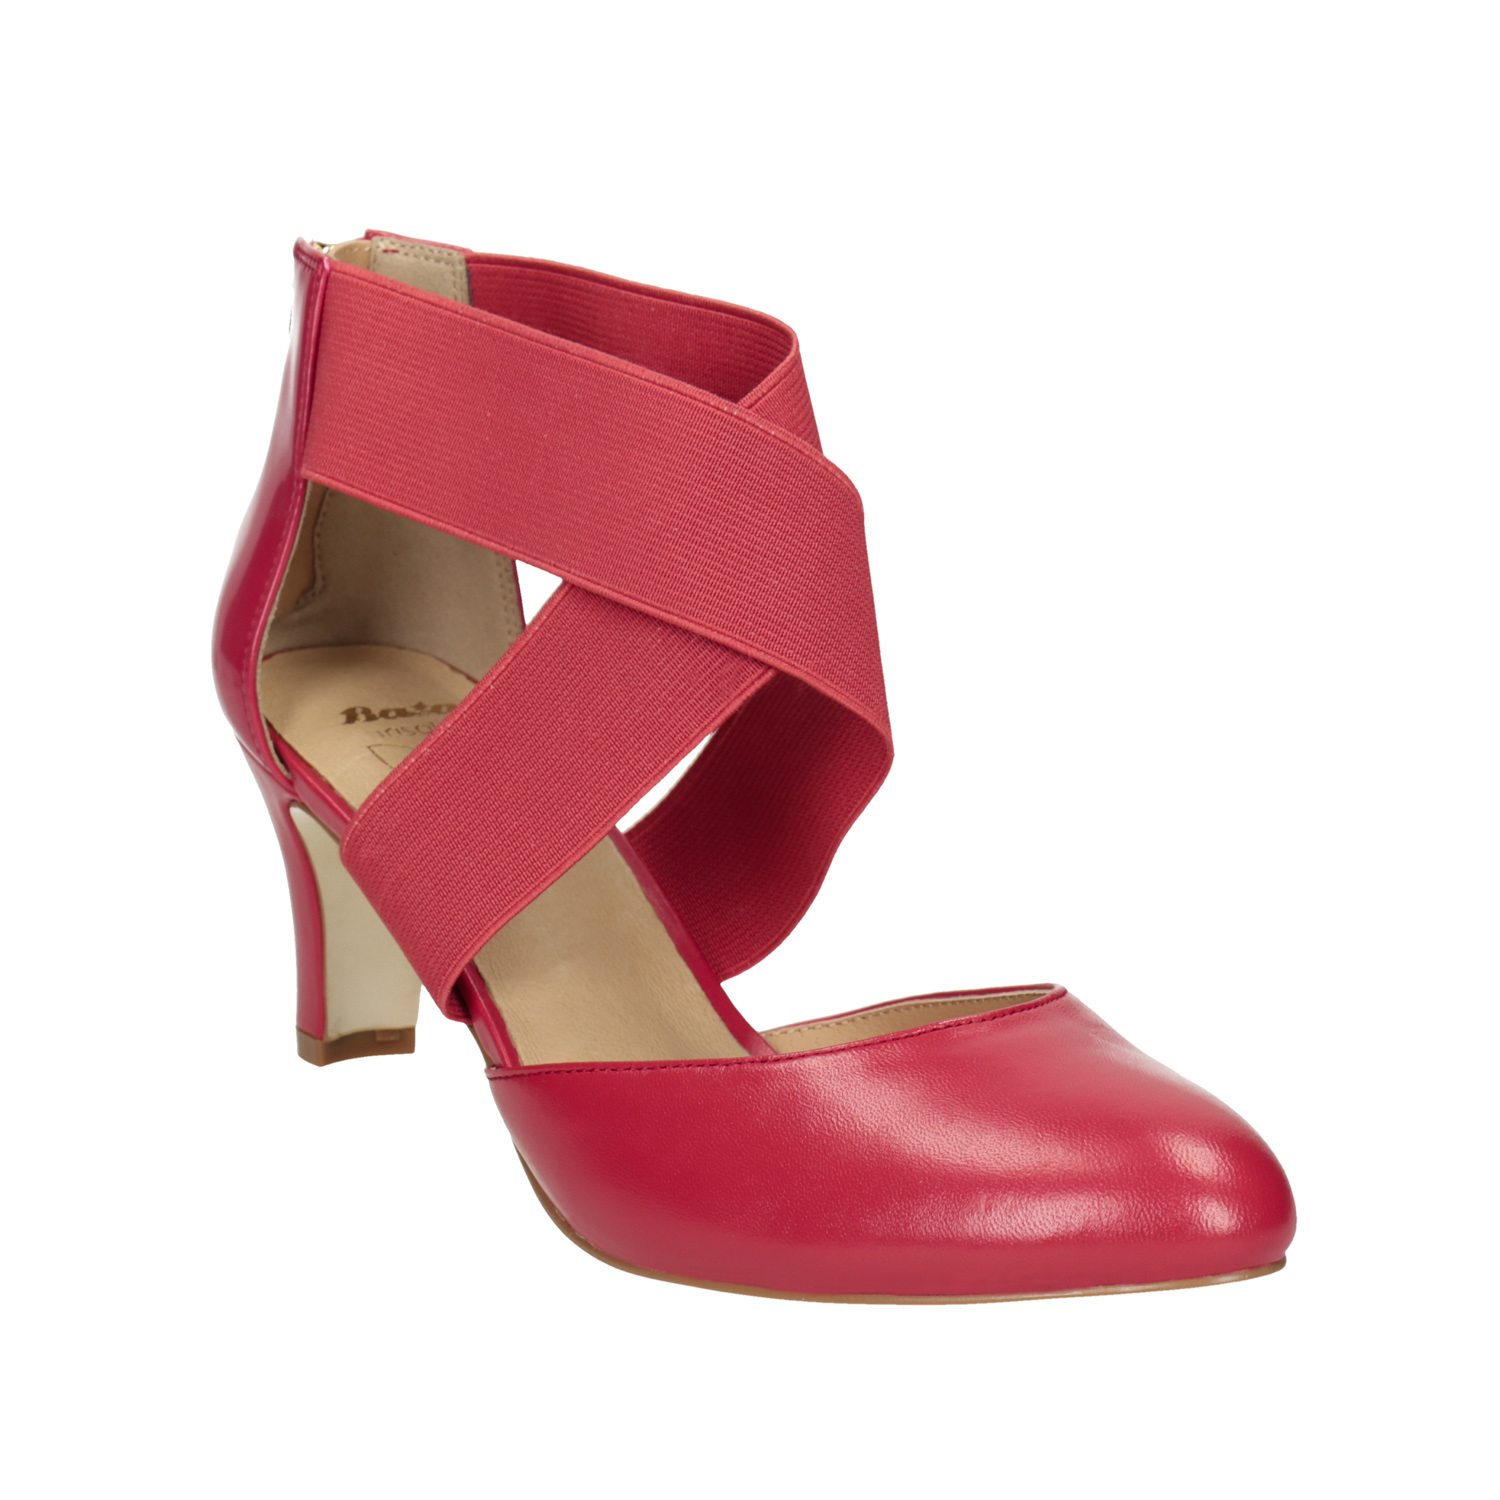 df53cd174458 Insolia Pink leather pumps - All Shoes